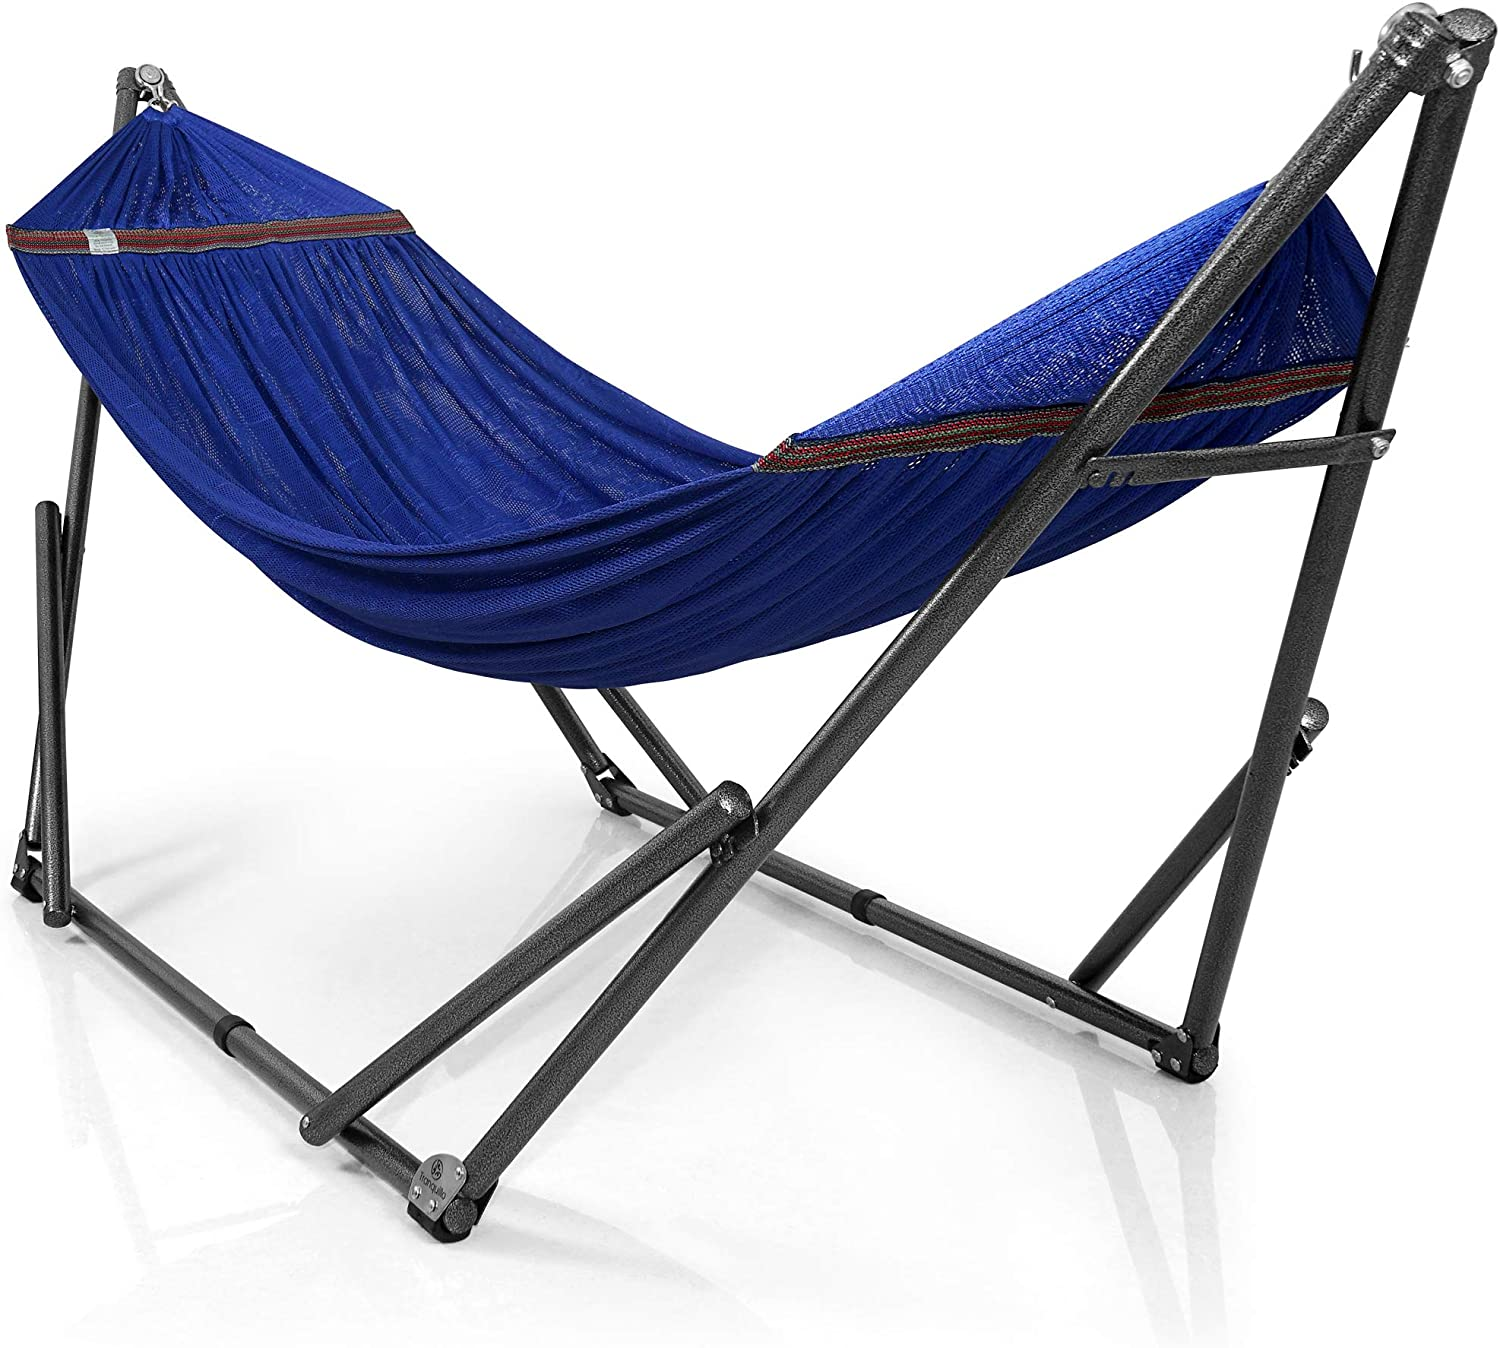 Tranquillo R9RY Universal Manufacturer regenerated product Hammock Cash special price Fr Steel Thickness Stand-1.2mm